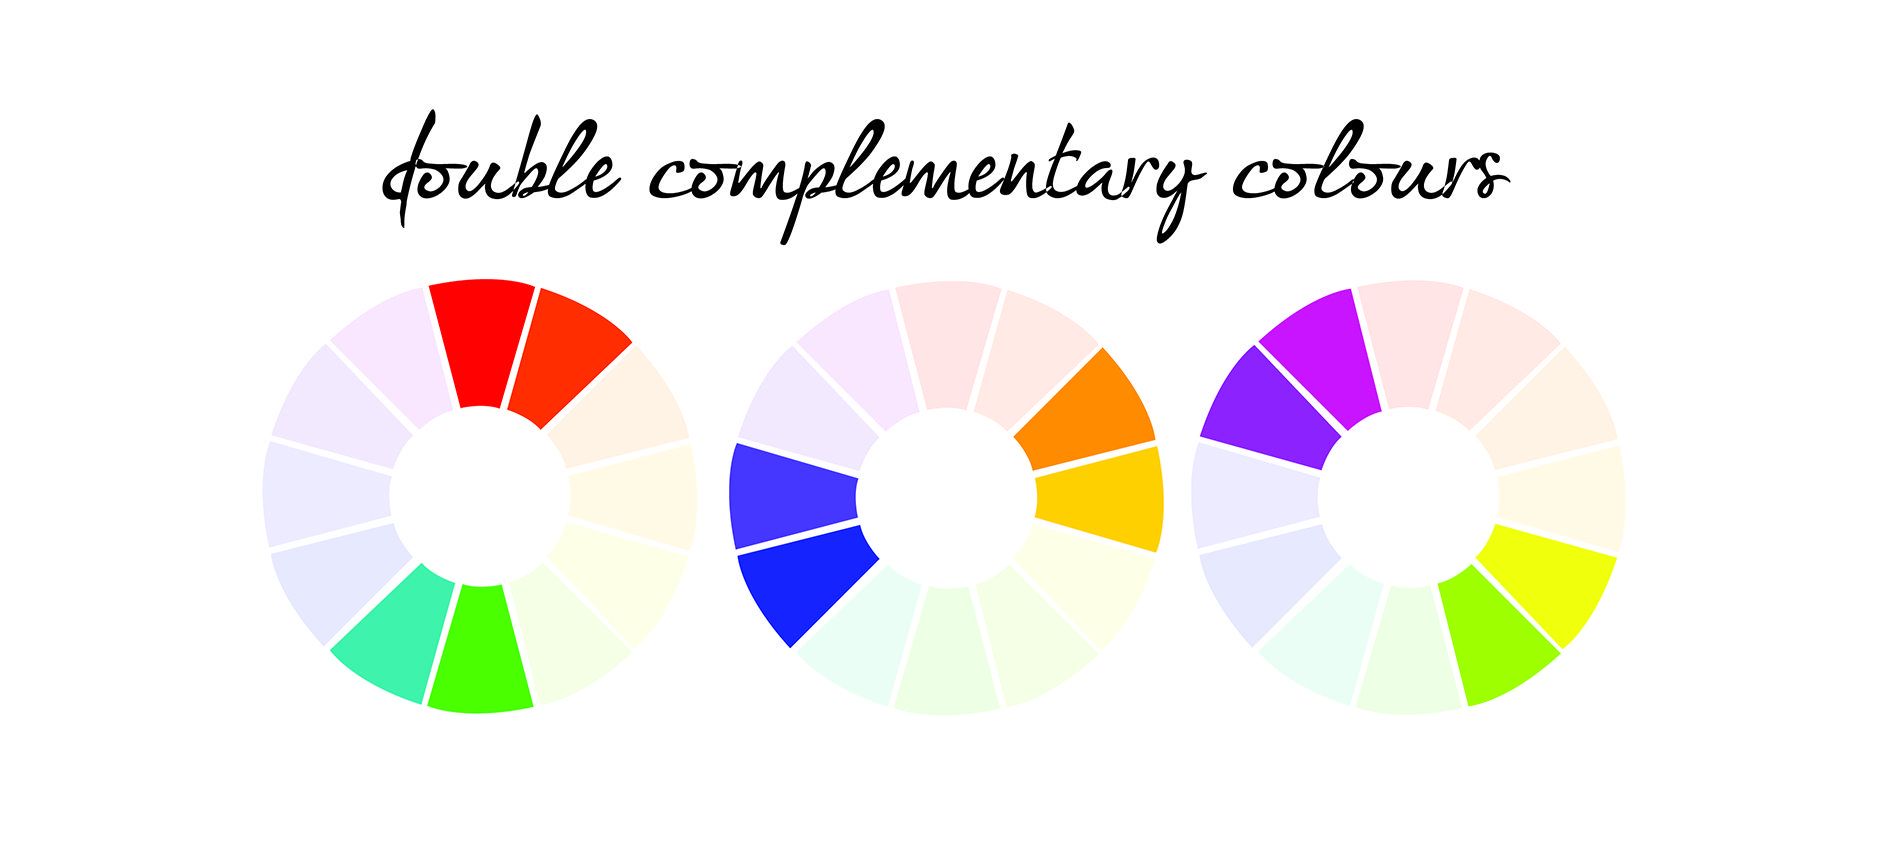 Examples Of Color Schemes double complementary- a four-hue contrasting color scheme. this